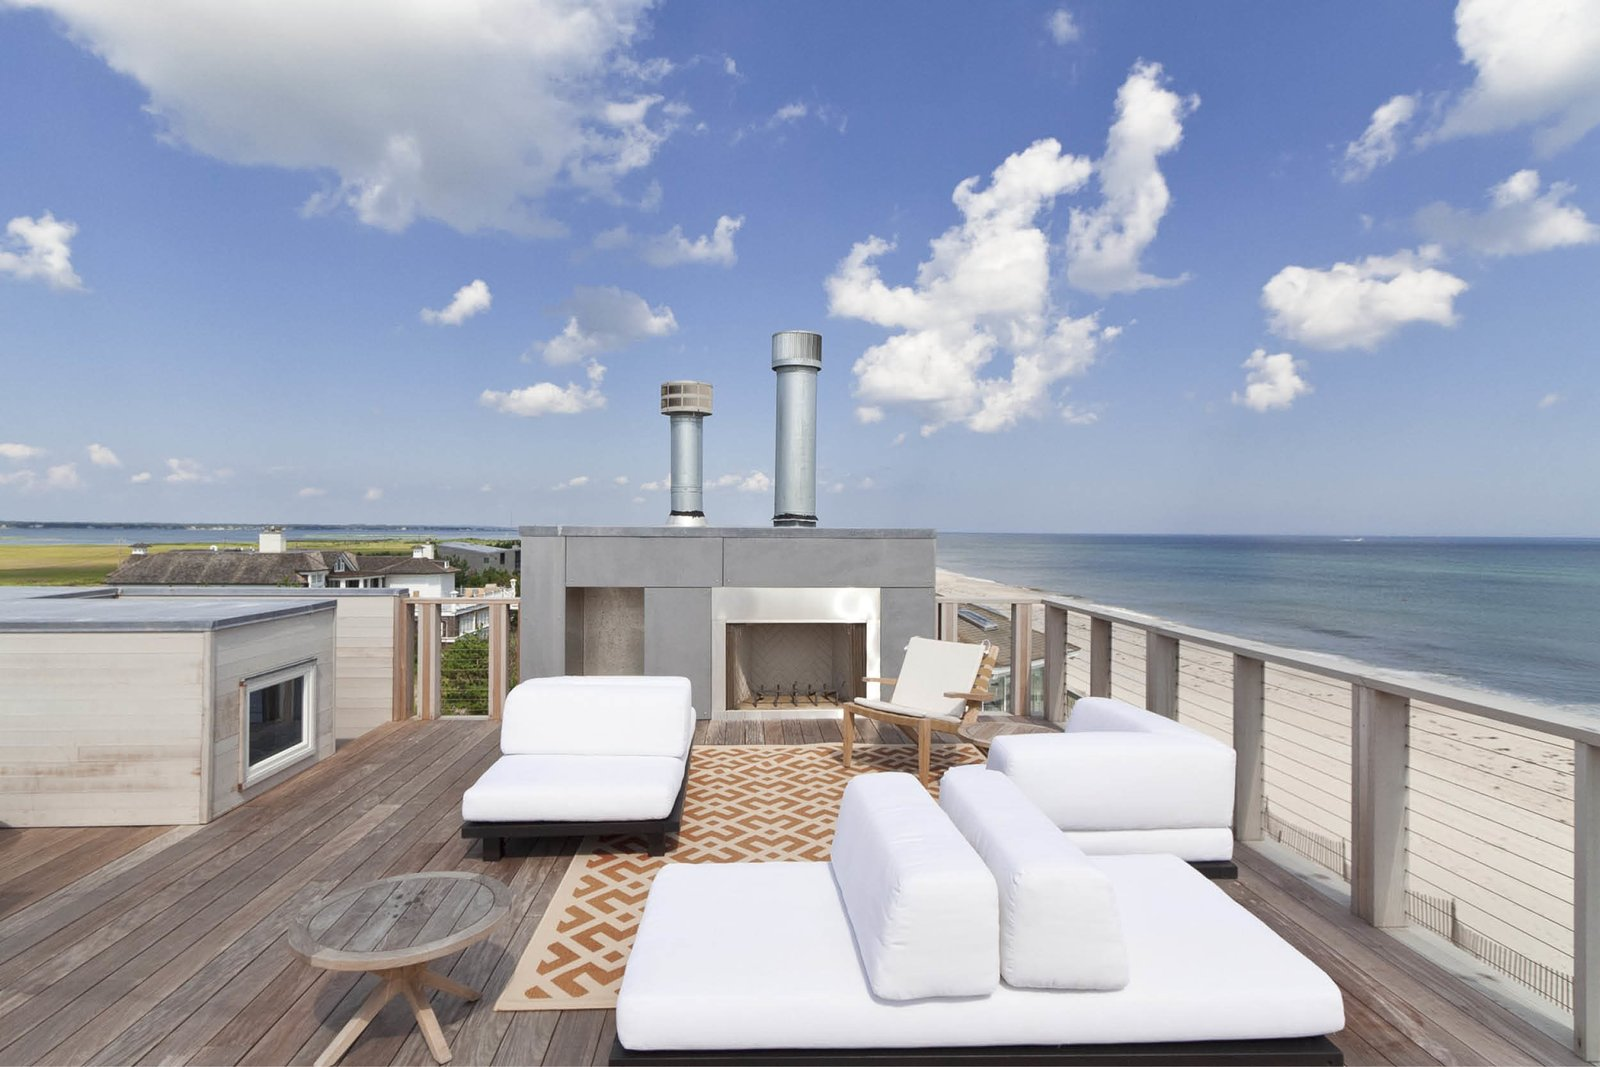 Rooftop, Wire Fences, Wall, Wood Patio, Porch, Deck, Decking Patio, Porch, Deck, Horizontal Fences, Wall, Wood Fences, Wall, and Exterior Roof deck/Outdoor living space  Best Photos from Dune Road Beach House